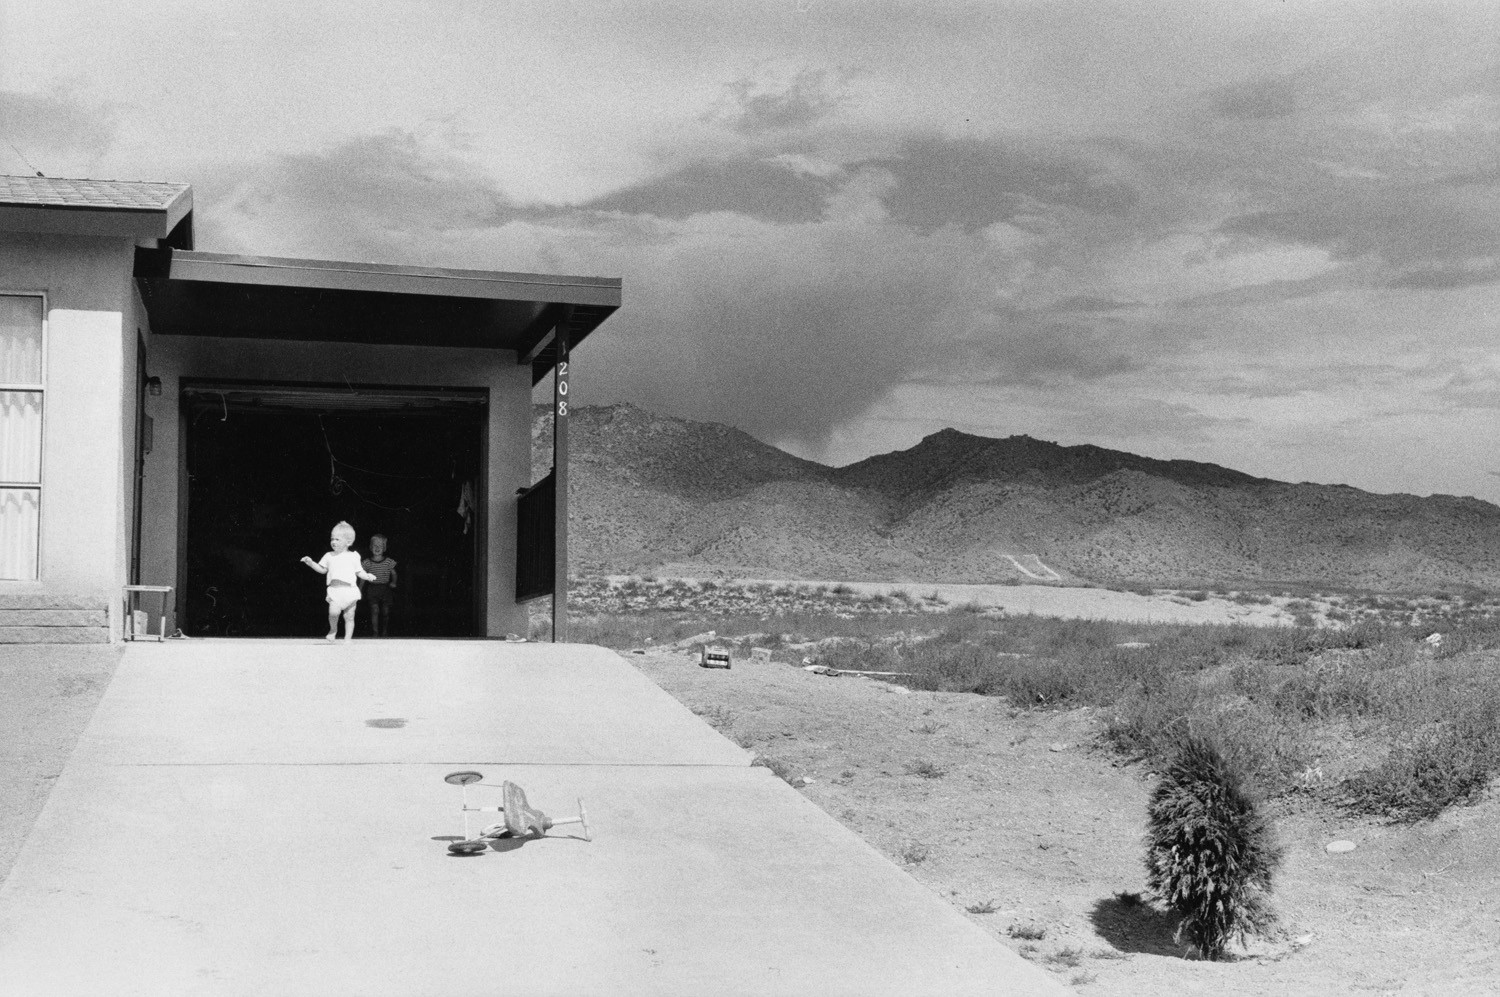 Garry Winogrand, Albuquerque, New Mexico, 1958